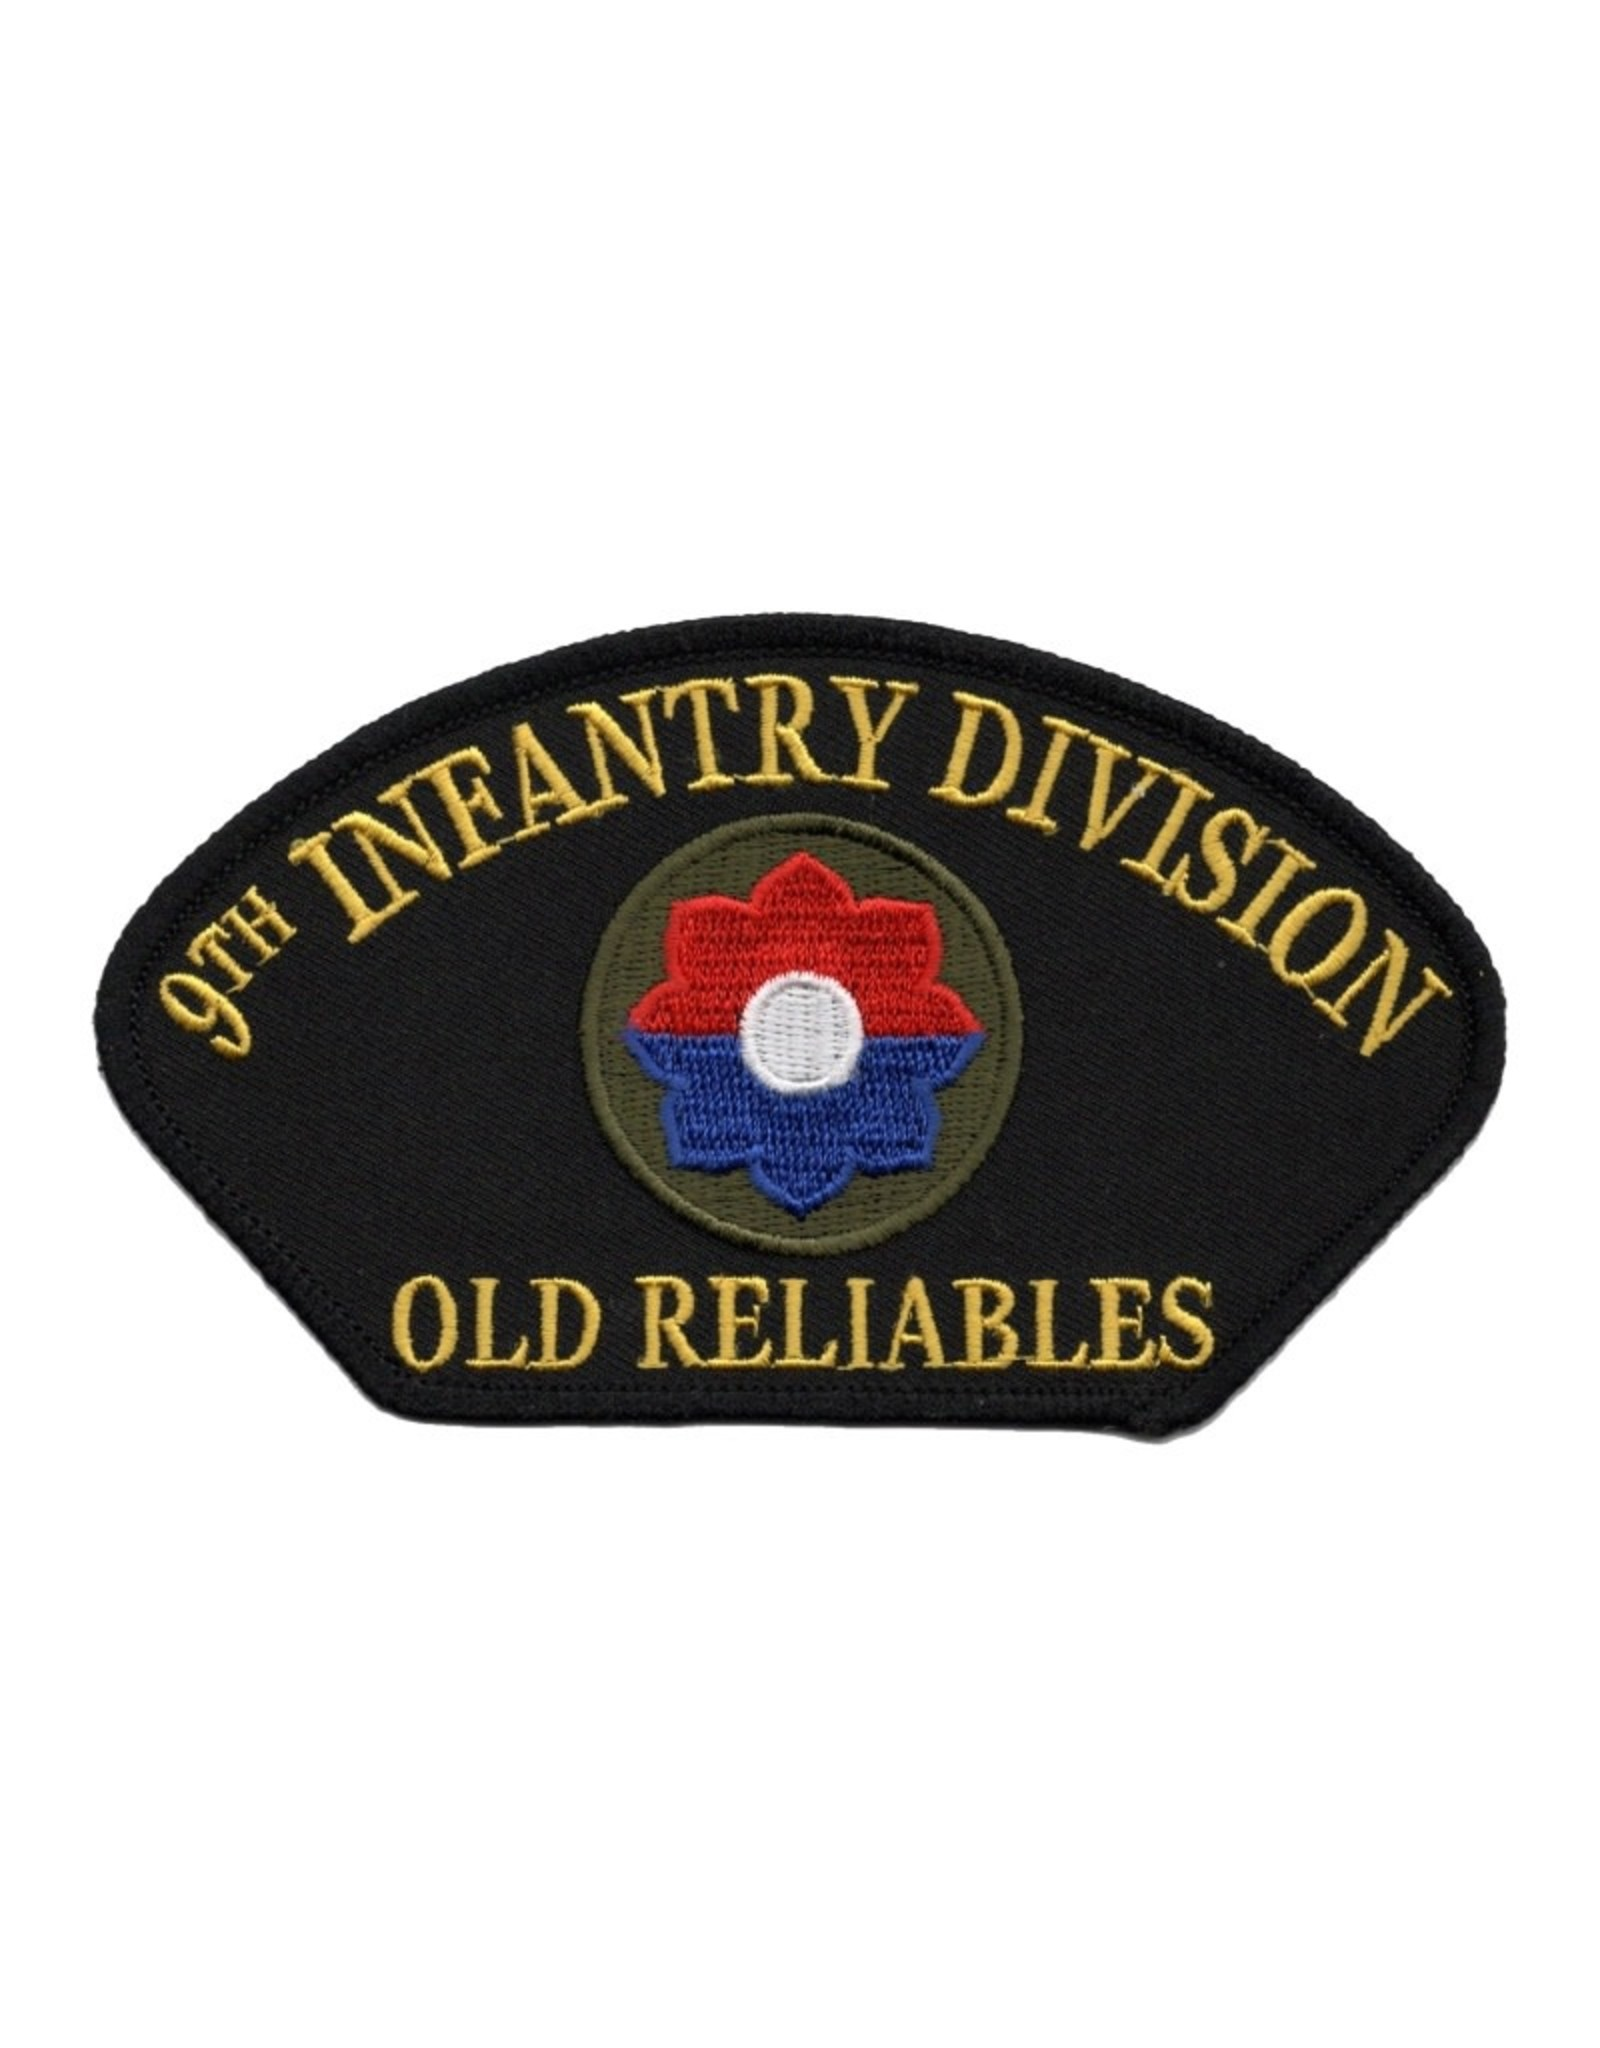 "MidMil Embroidered Army 9th Infantry Division Patch with Emblem and Motto ""Old Reliables"" 5.2"" wide x 3"" high Black"